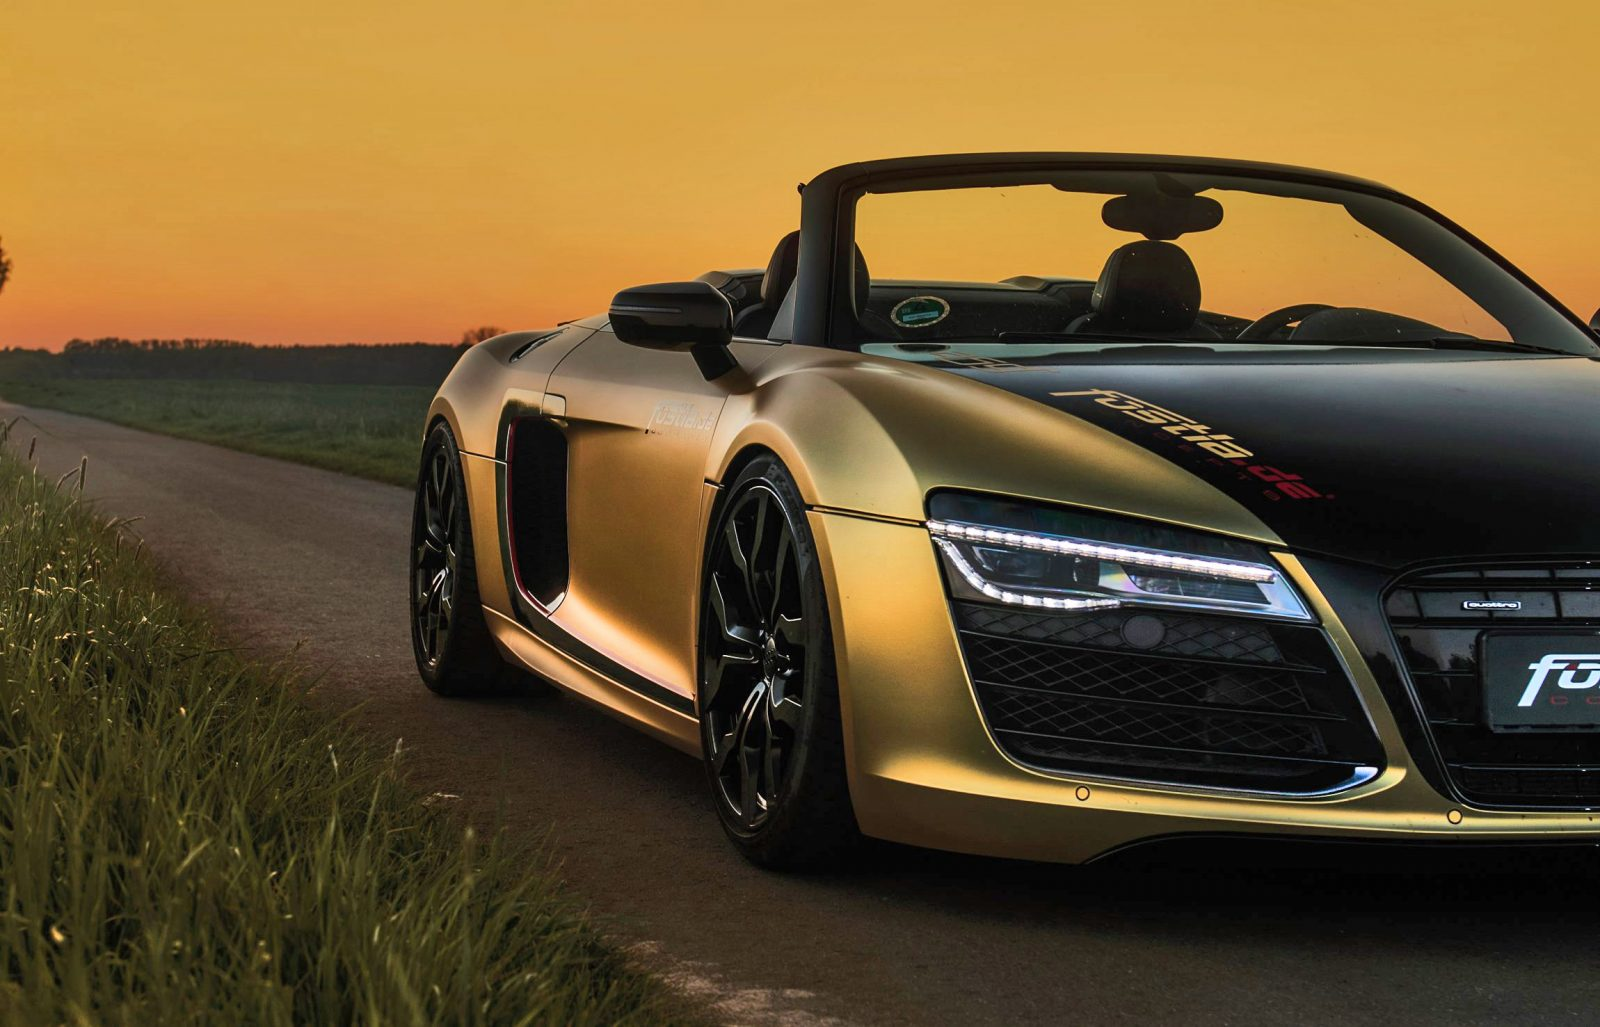 2017 audi r8 v10 spyder by car shopping. Black Bedroom Furniture Sets. Home Design Ideas